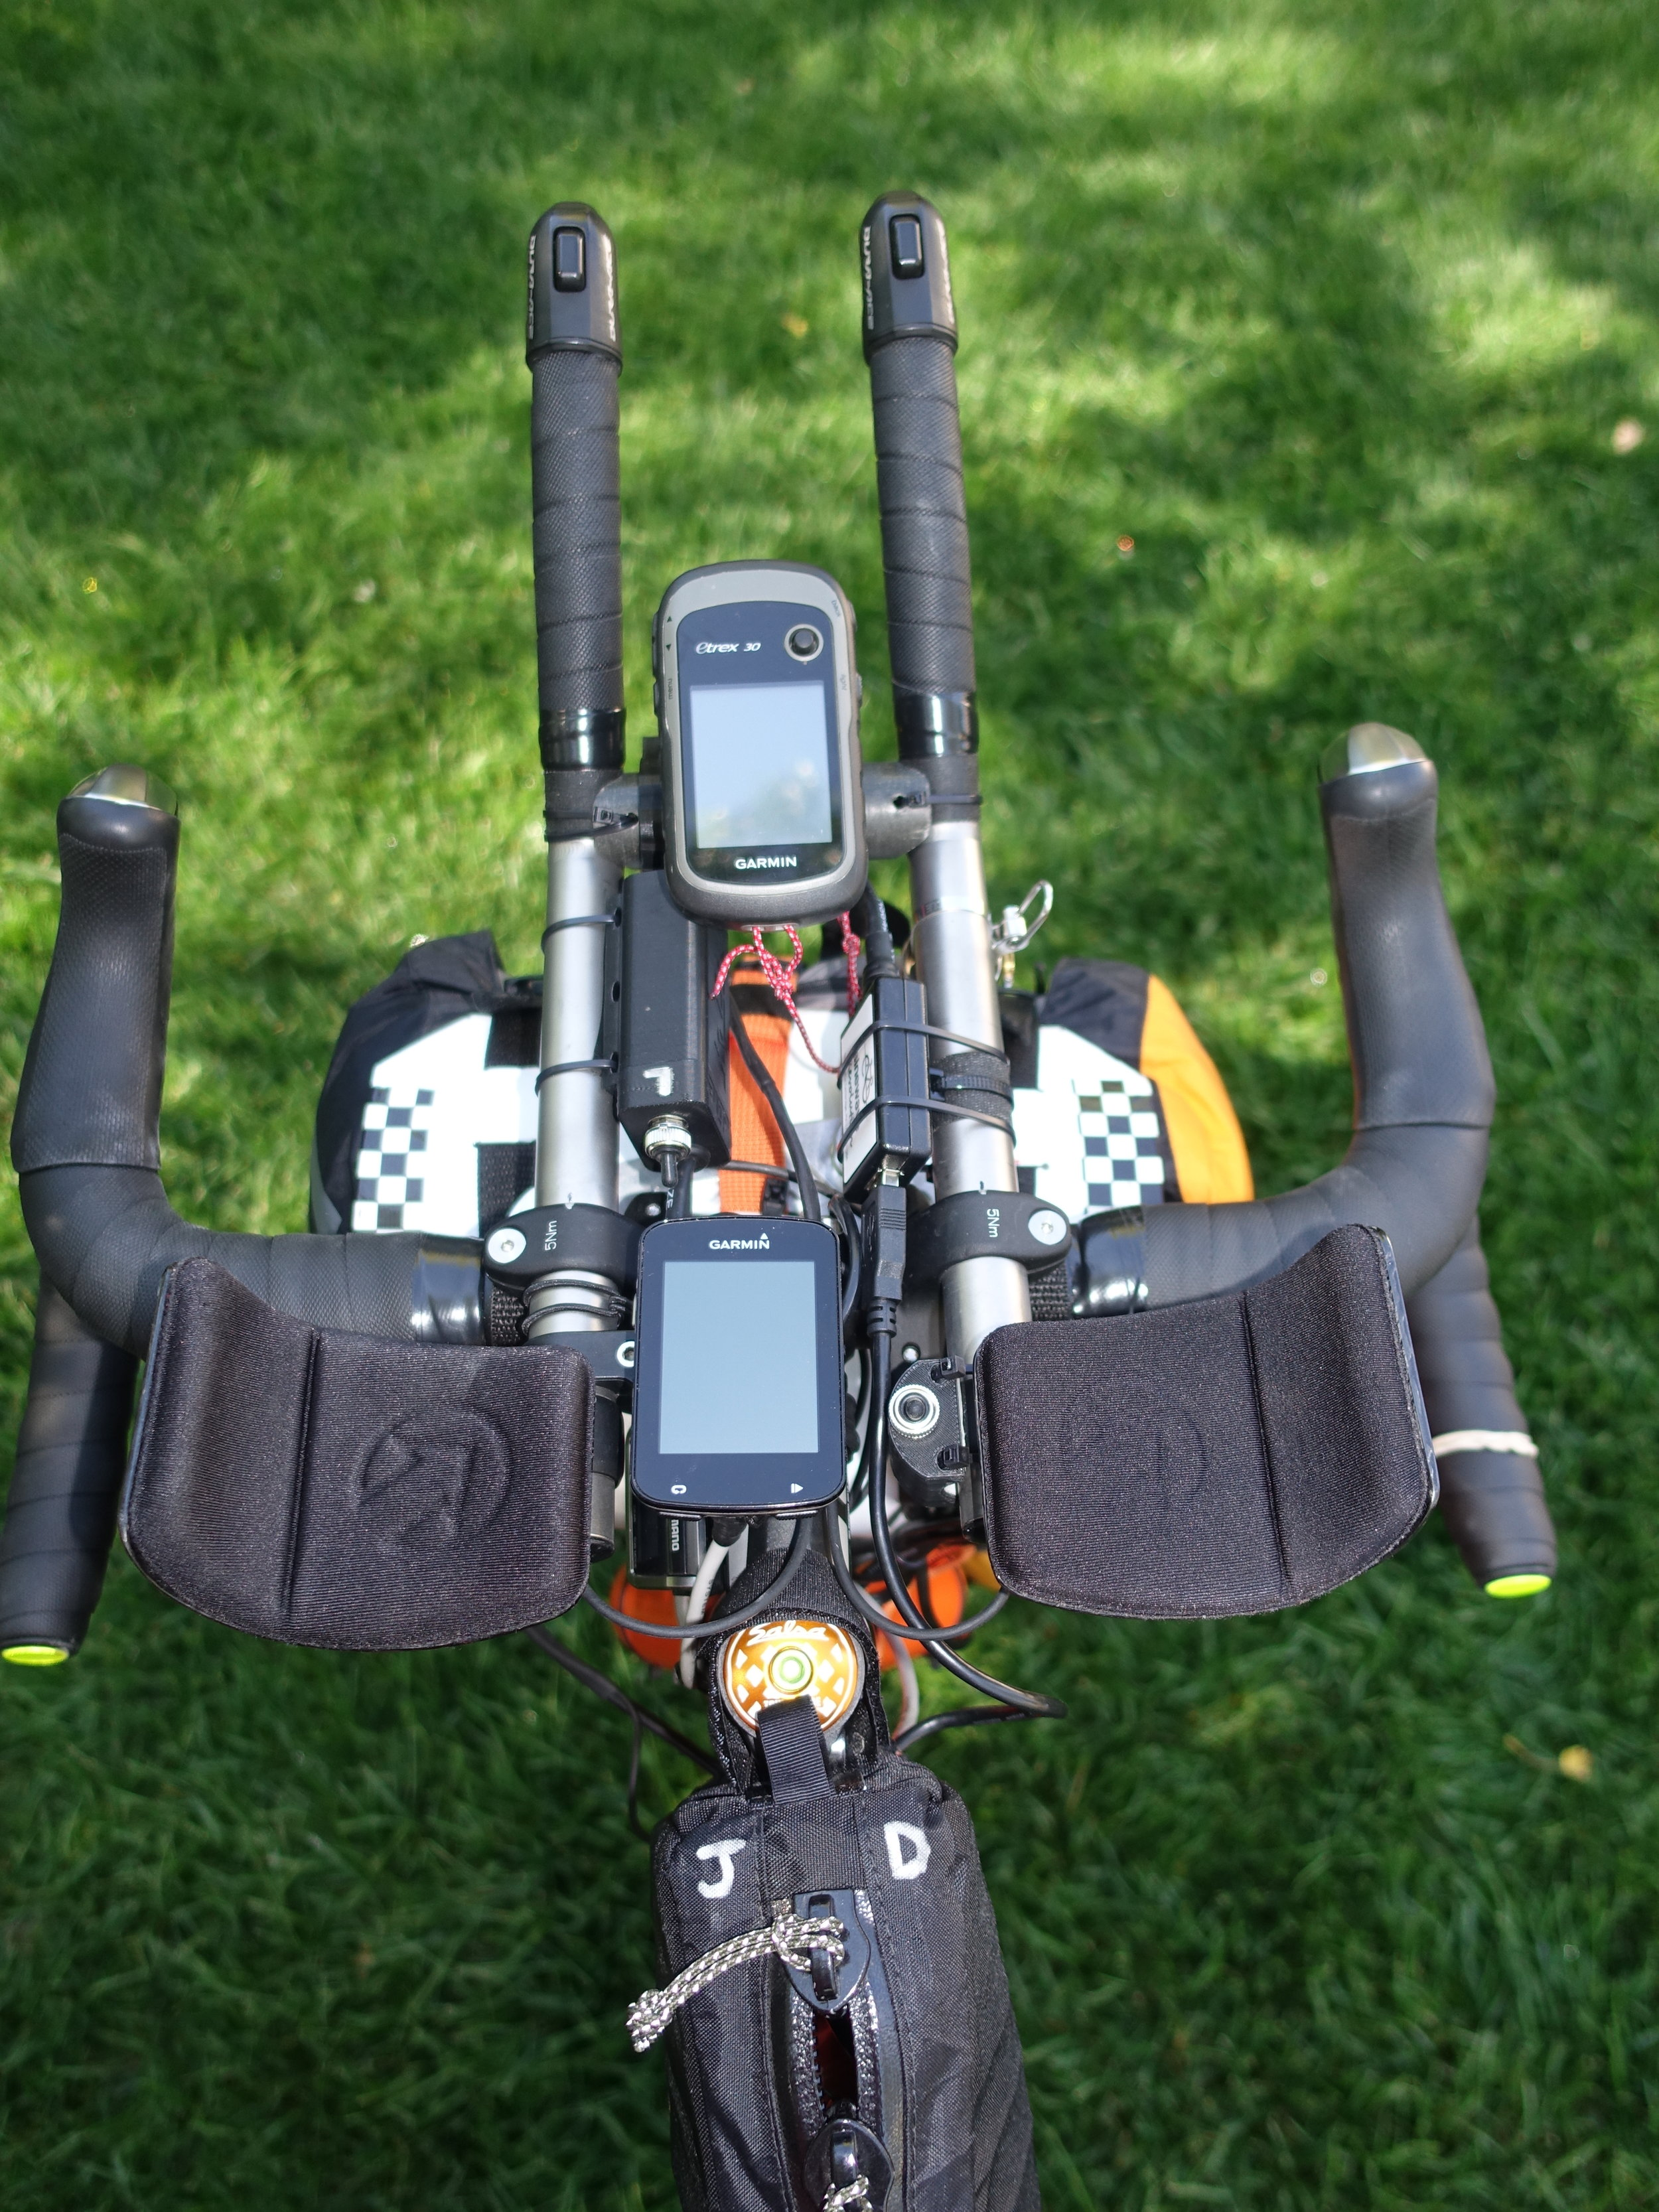 The cockpit: navigation, lighting, charging, and nutrition all within reach.